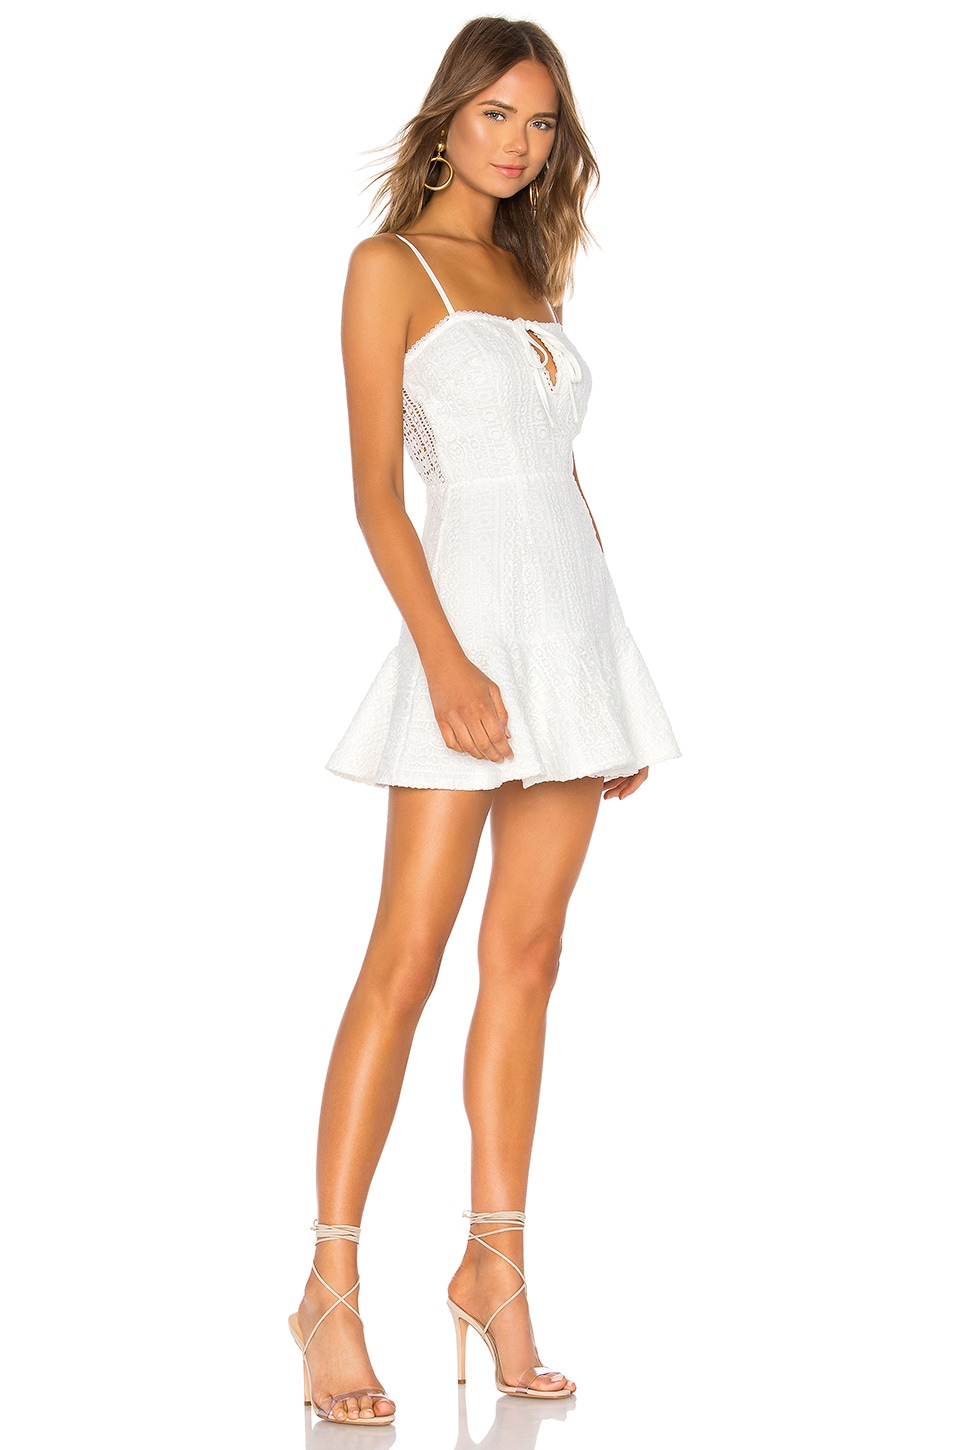 Del Crochet Keyhole Dress             superdown                                                                                                       CA$ 101.11 18